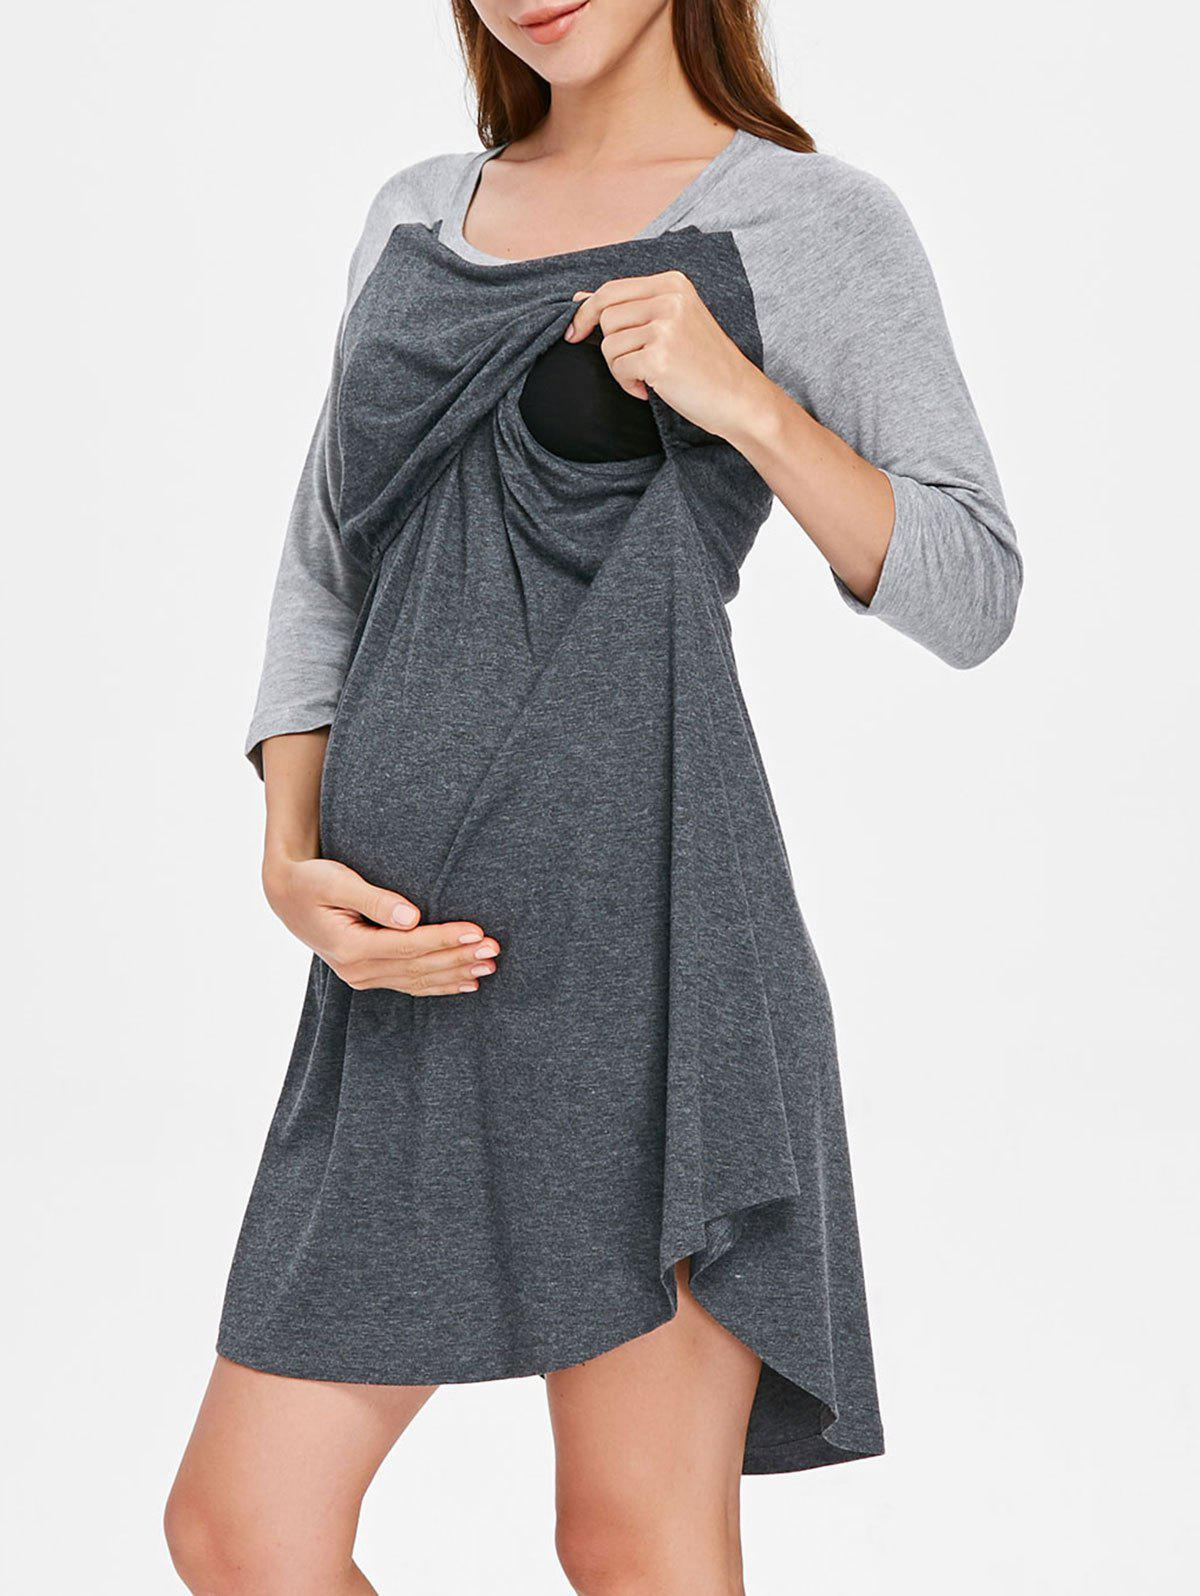 Fashion Round Collar Color Block Maternity Sleep Dress